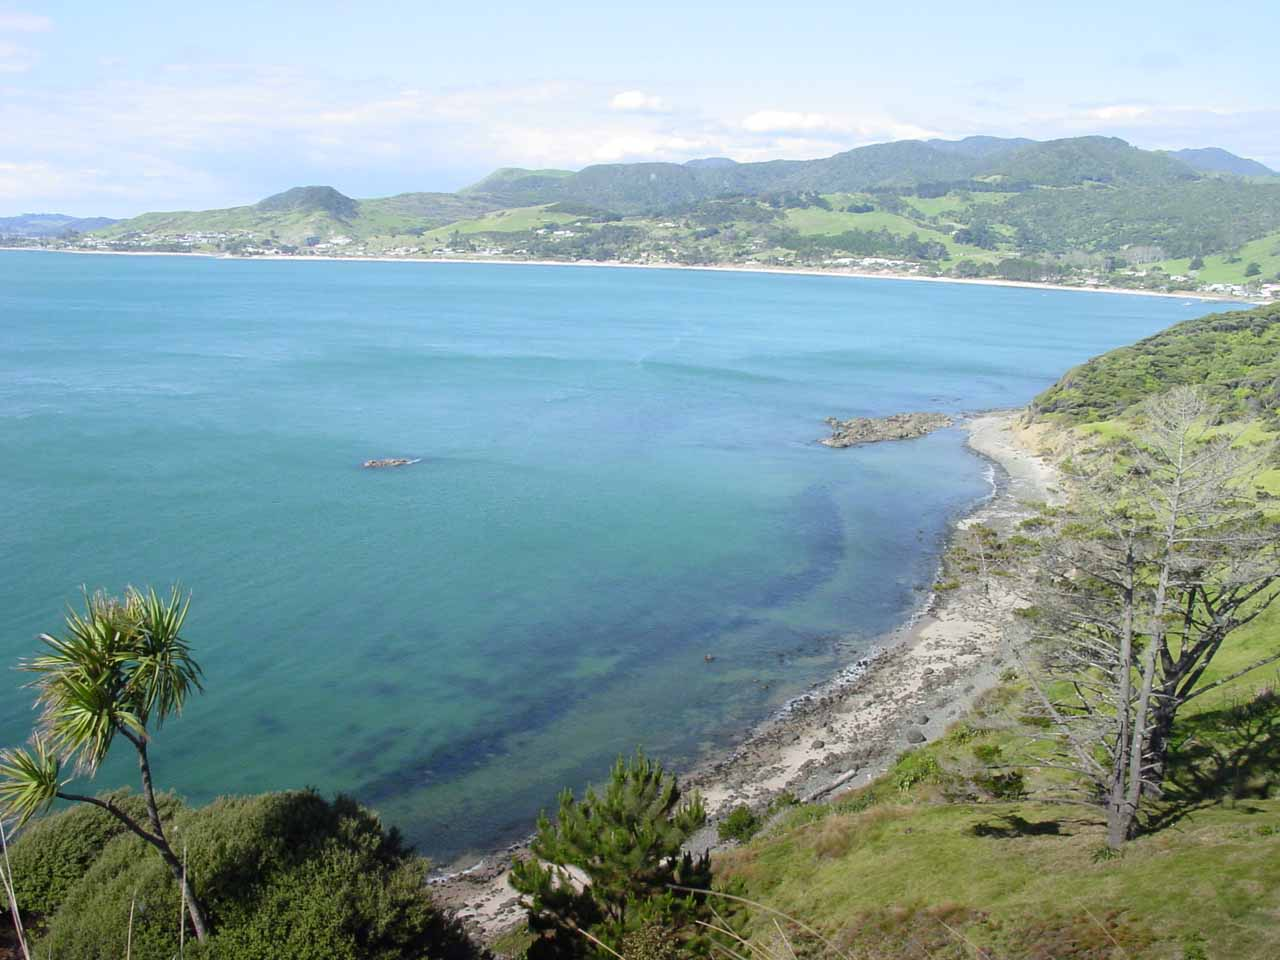 Further to the west of the Bay of Islands was the Hokianga Harbour, which afforded us this view of Northland's west coast and its beautiful blue waters